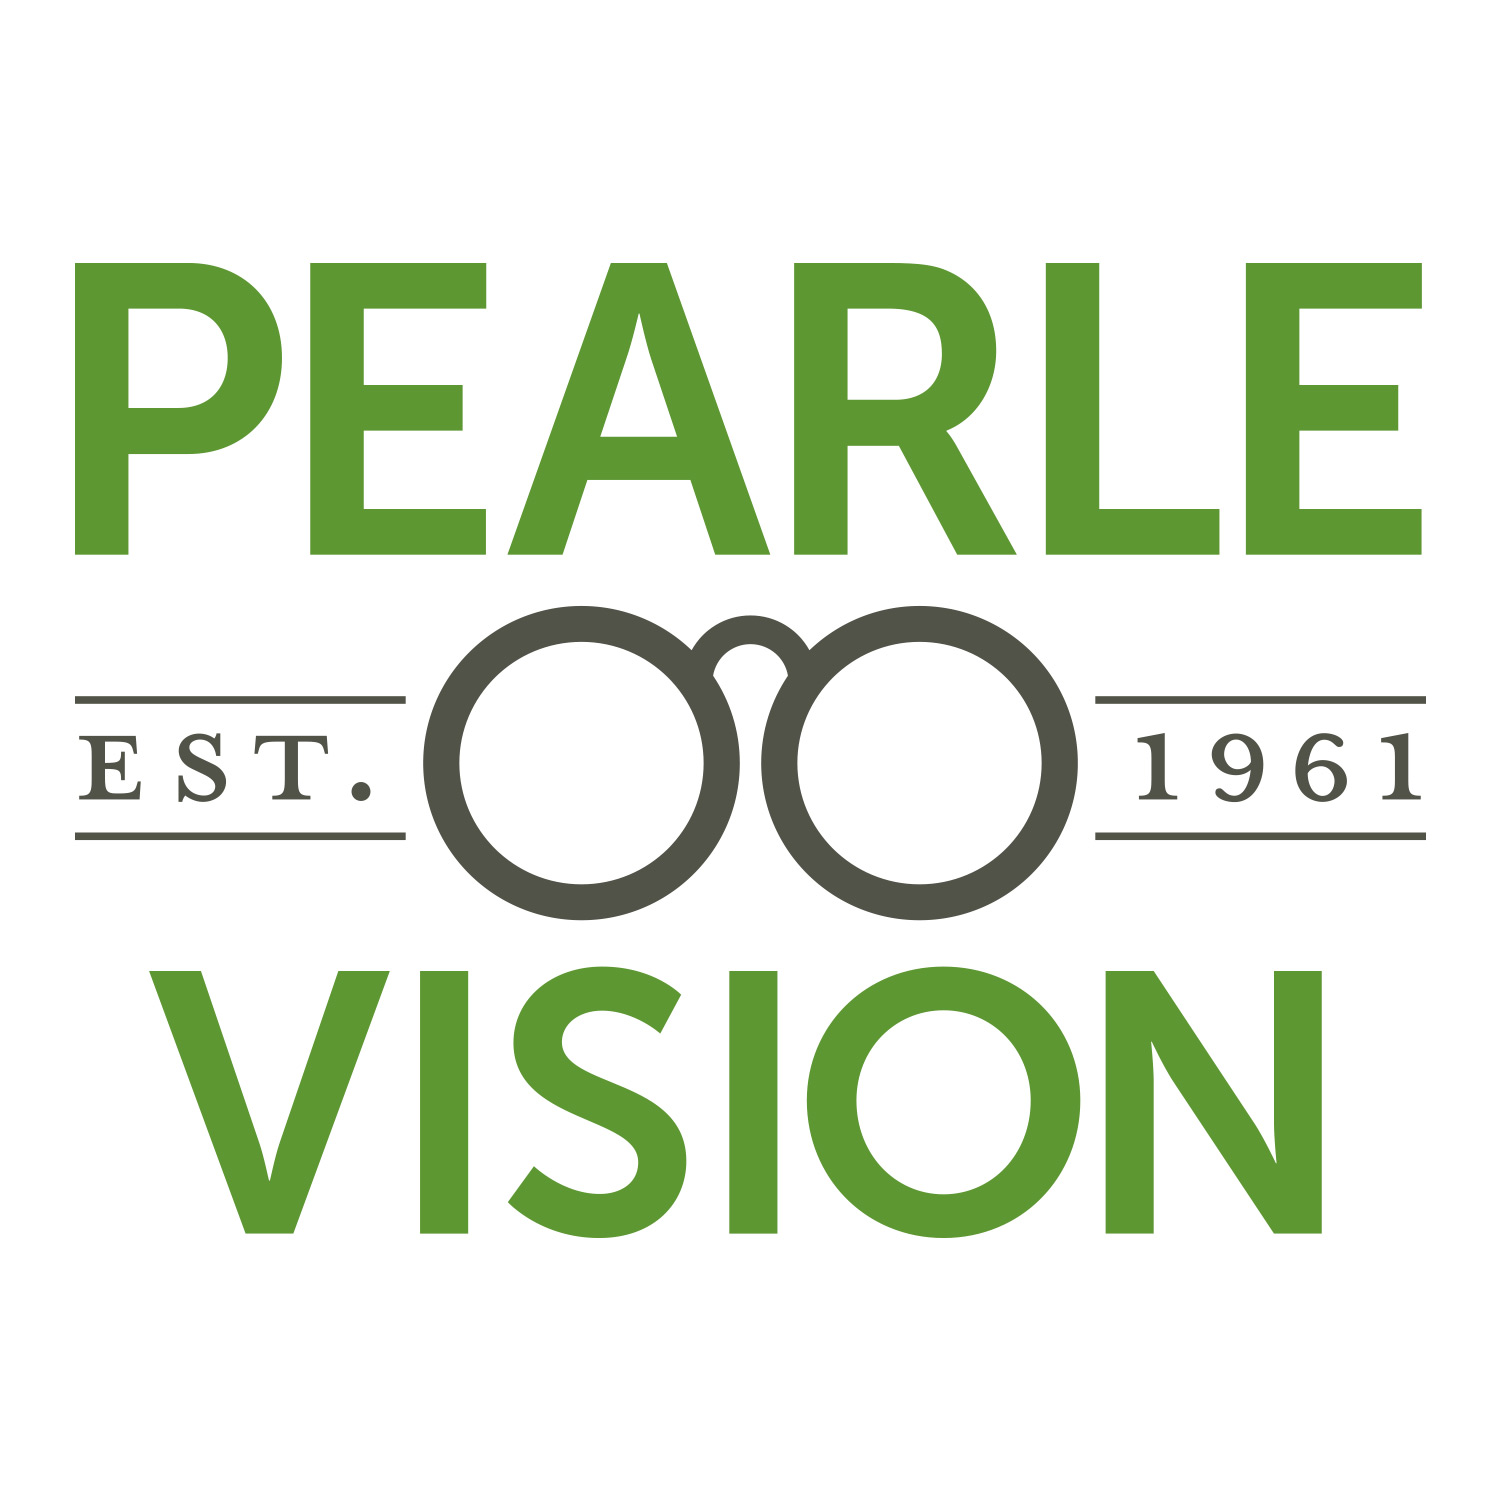 74a248eb28 Pearle Vision Eye Care Center in Philadelphia